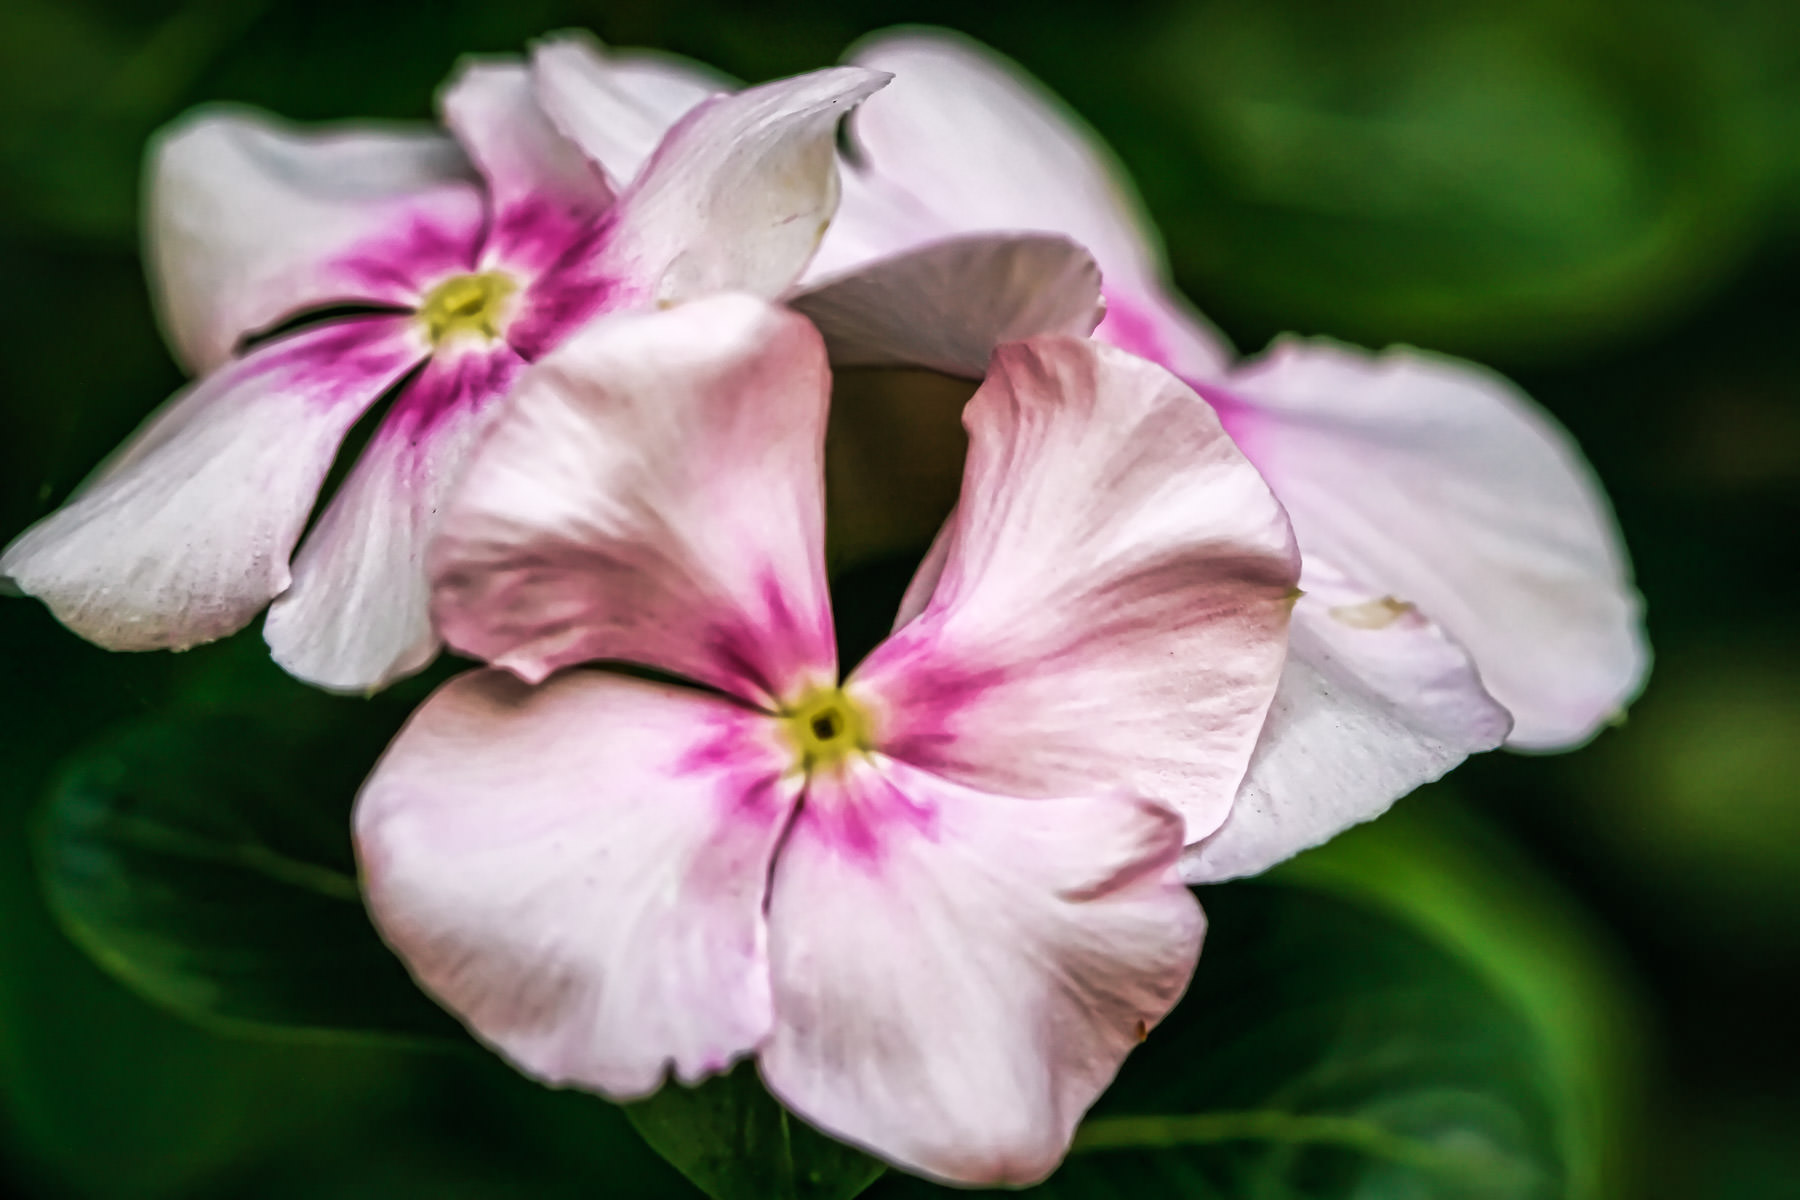 Three pink and white flowers I found in my mother's garden.